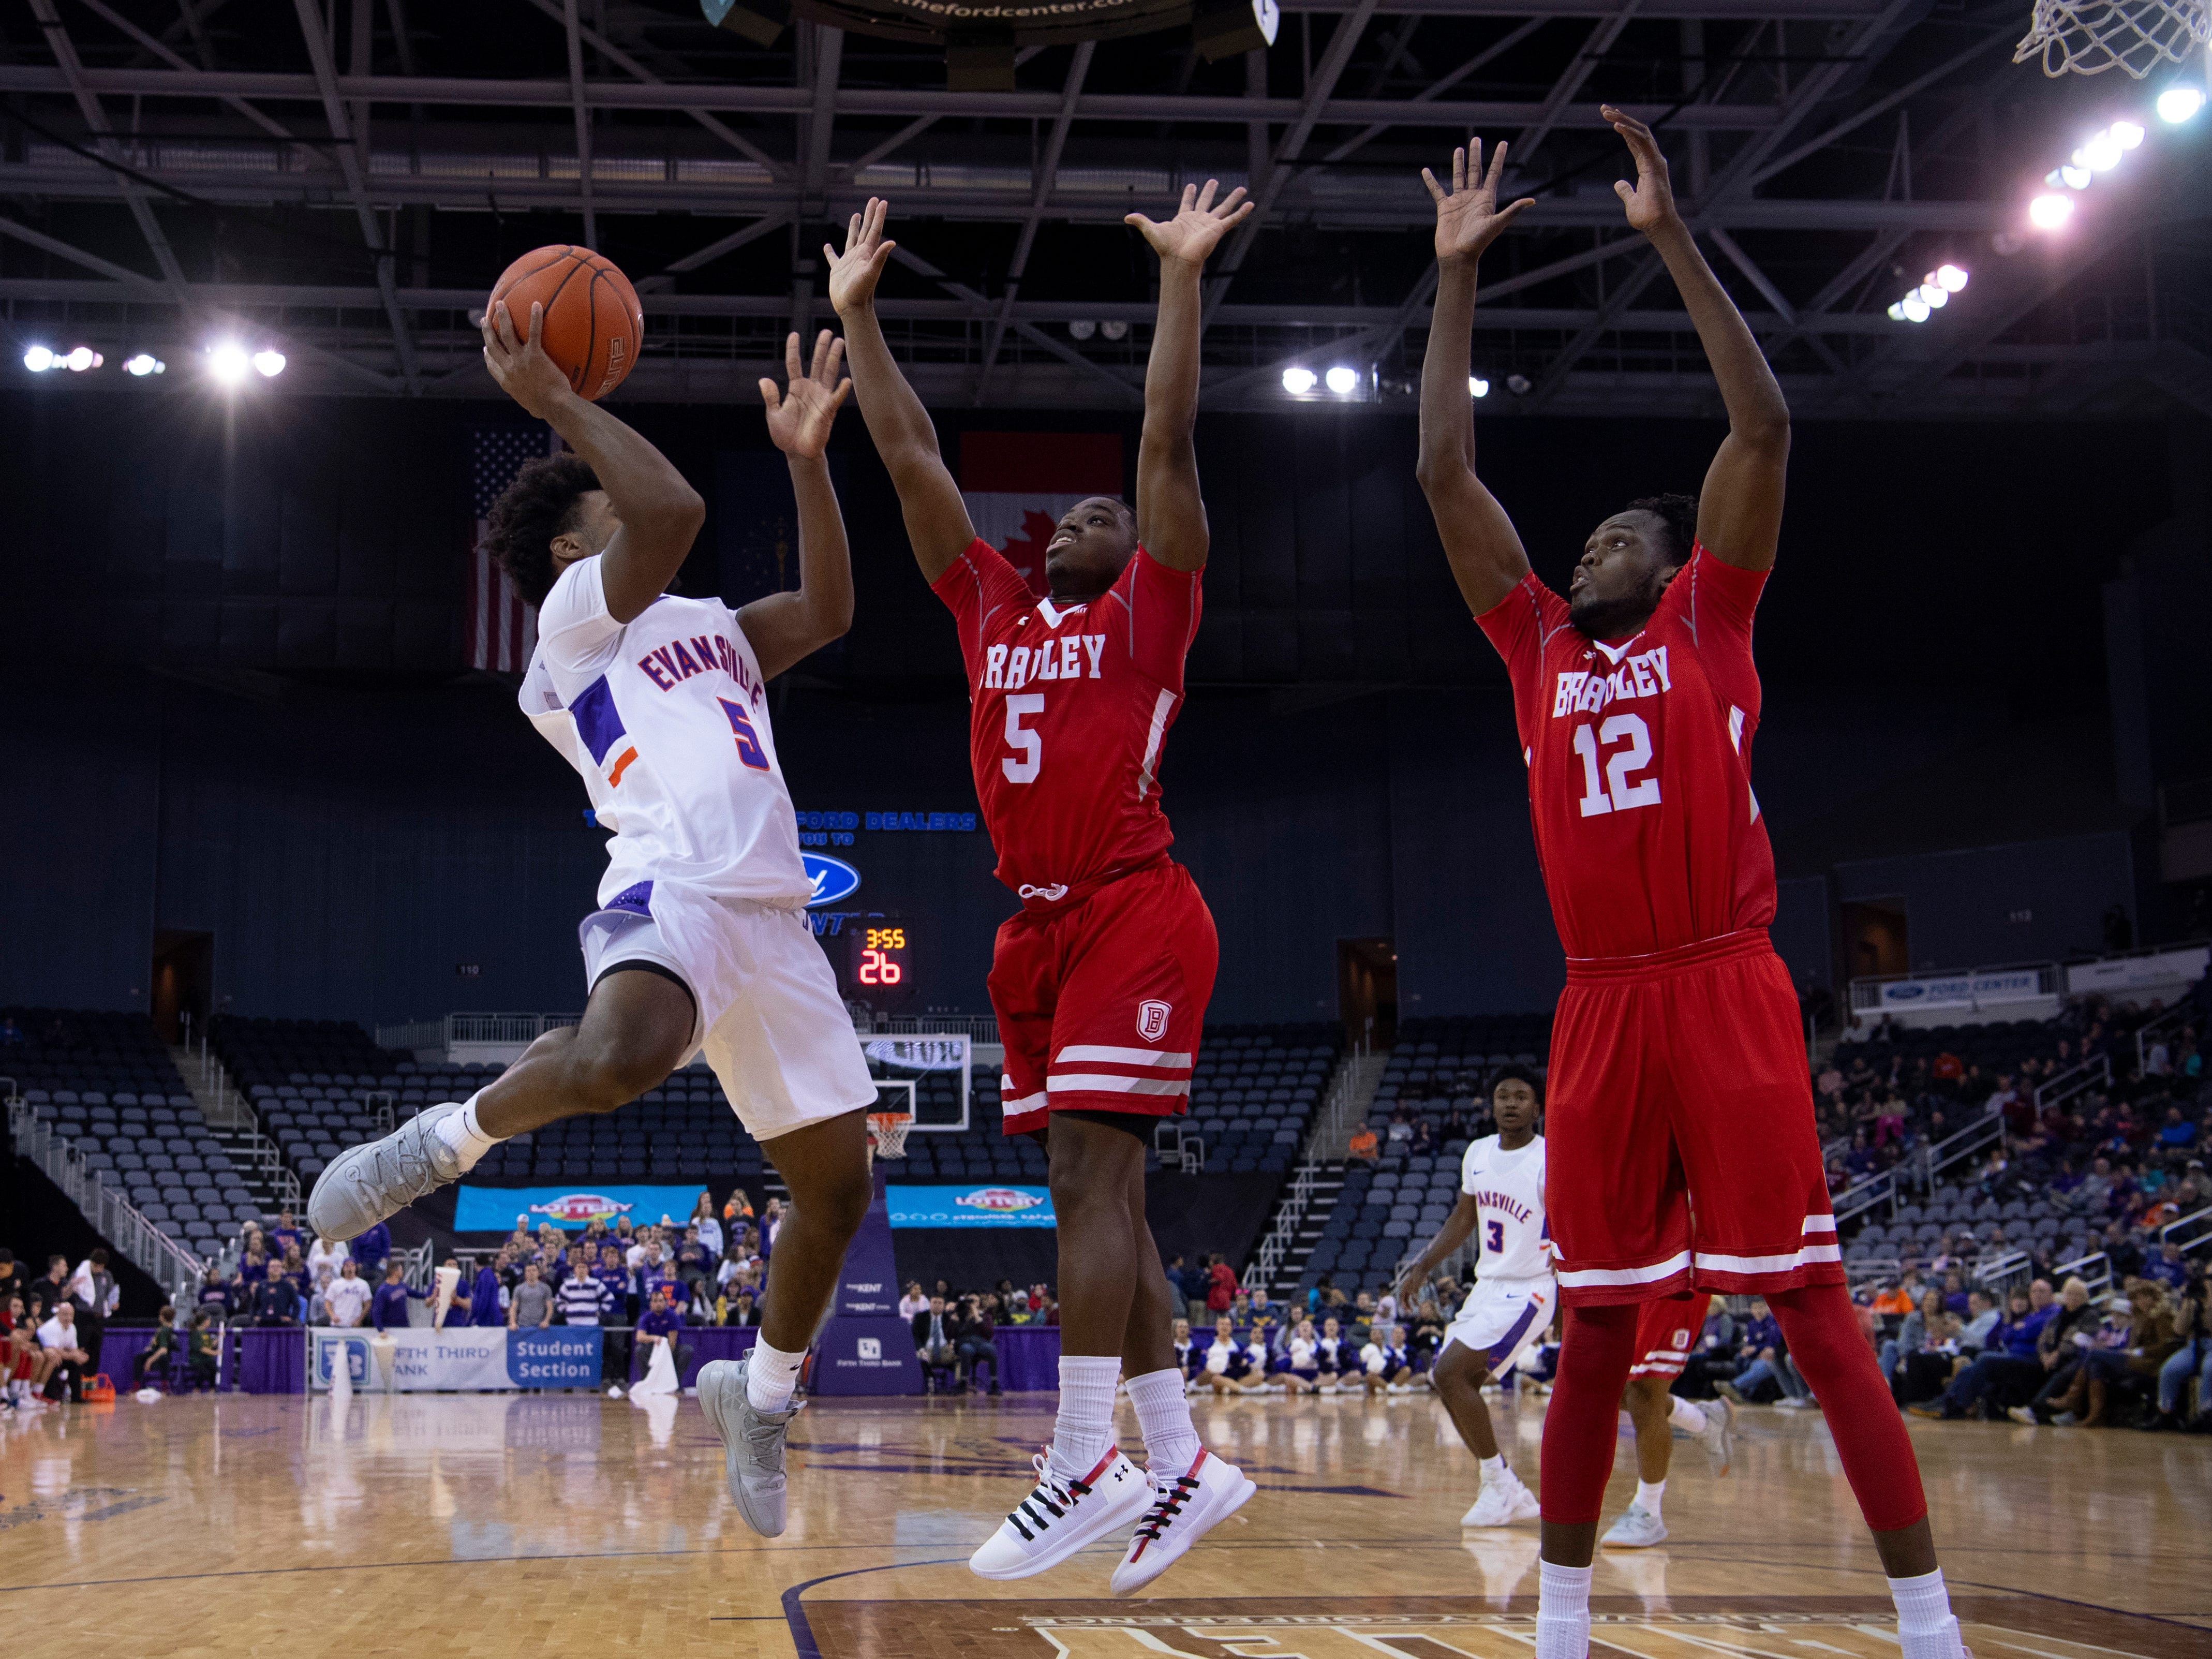 Evansville's Shamar Givance (5)  pulls up for a shot over Bradley's Darrell Brown (5) and Koch Bar (12) during their game at the Ford Center Wednesday night.